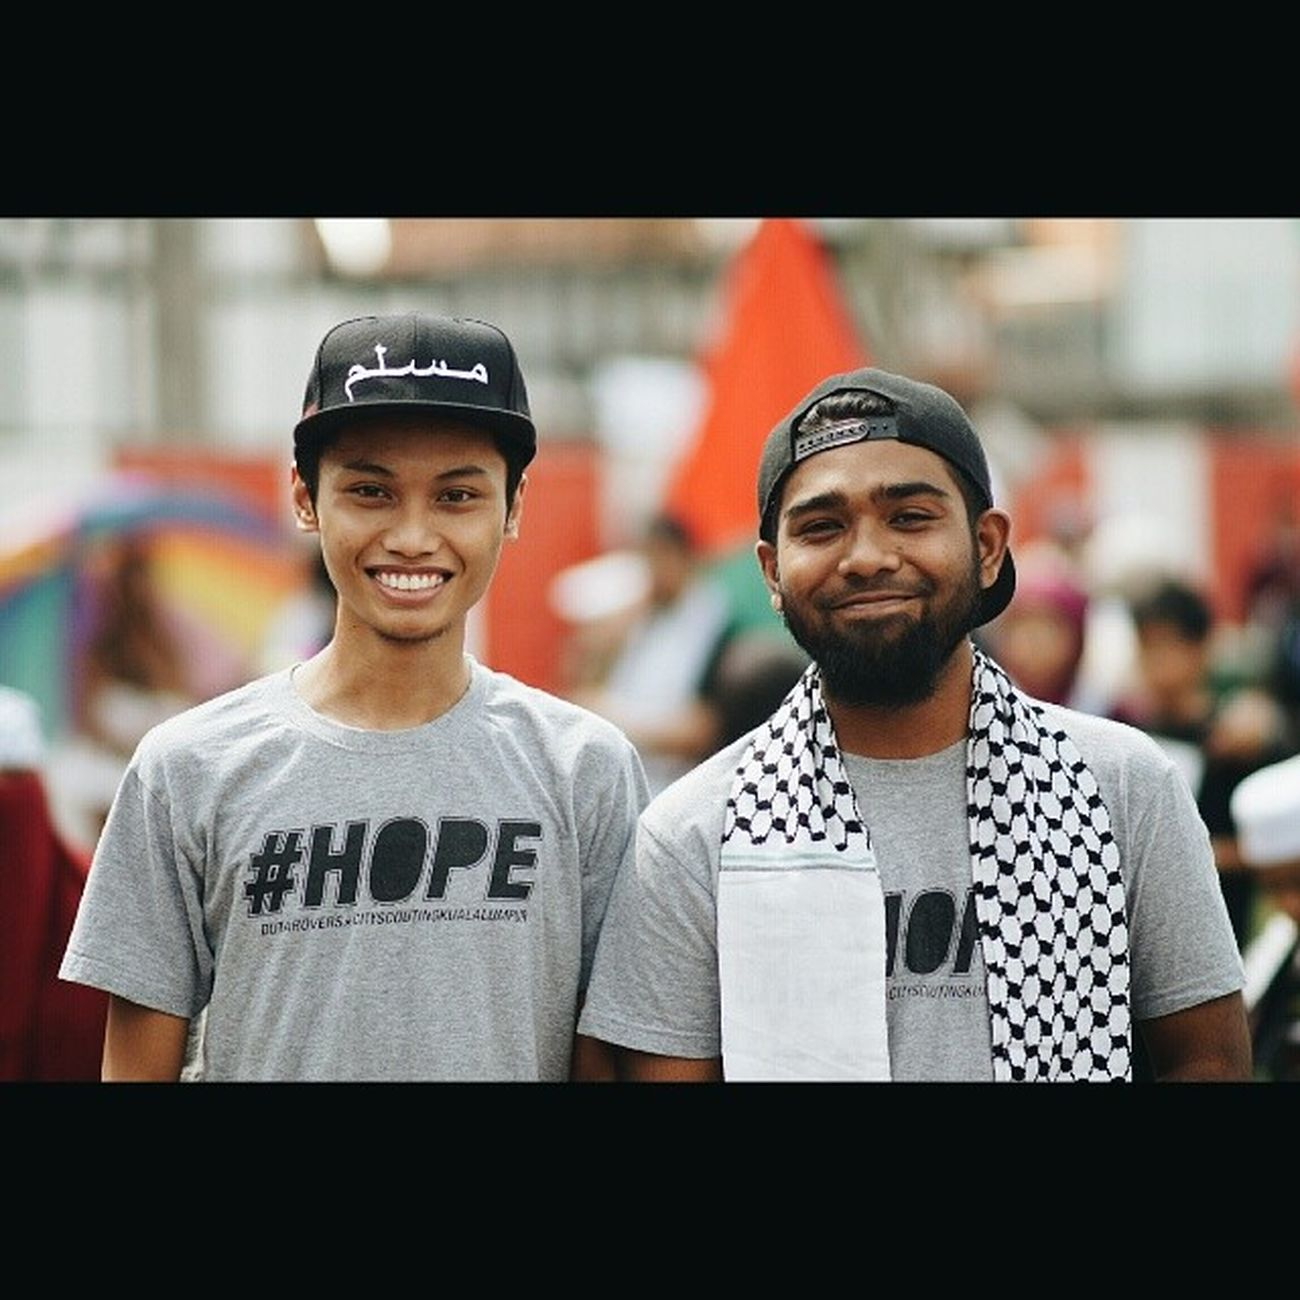 keep safe or rescue from harm or danger, keep and store up for future use, is a direct definition of save | save the children in gaza Gaza Pray4gaza Rally Klcity hope cskl